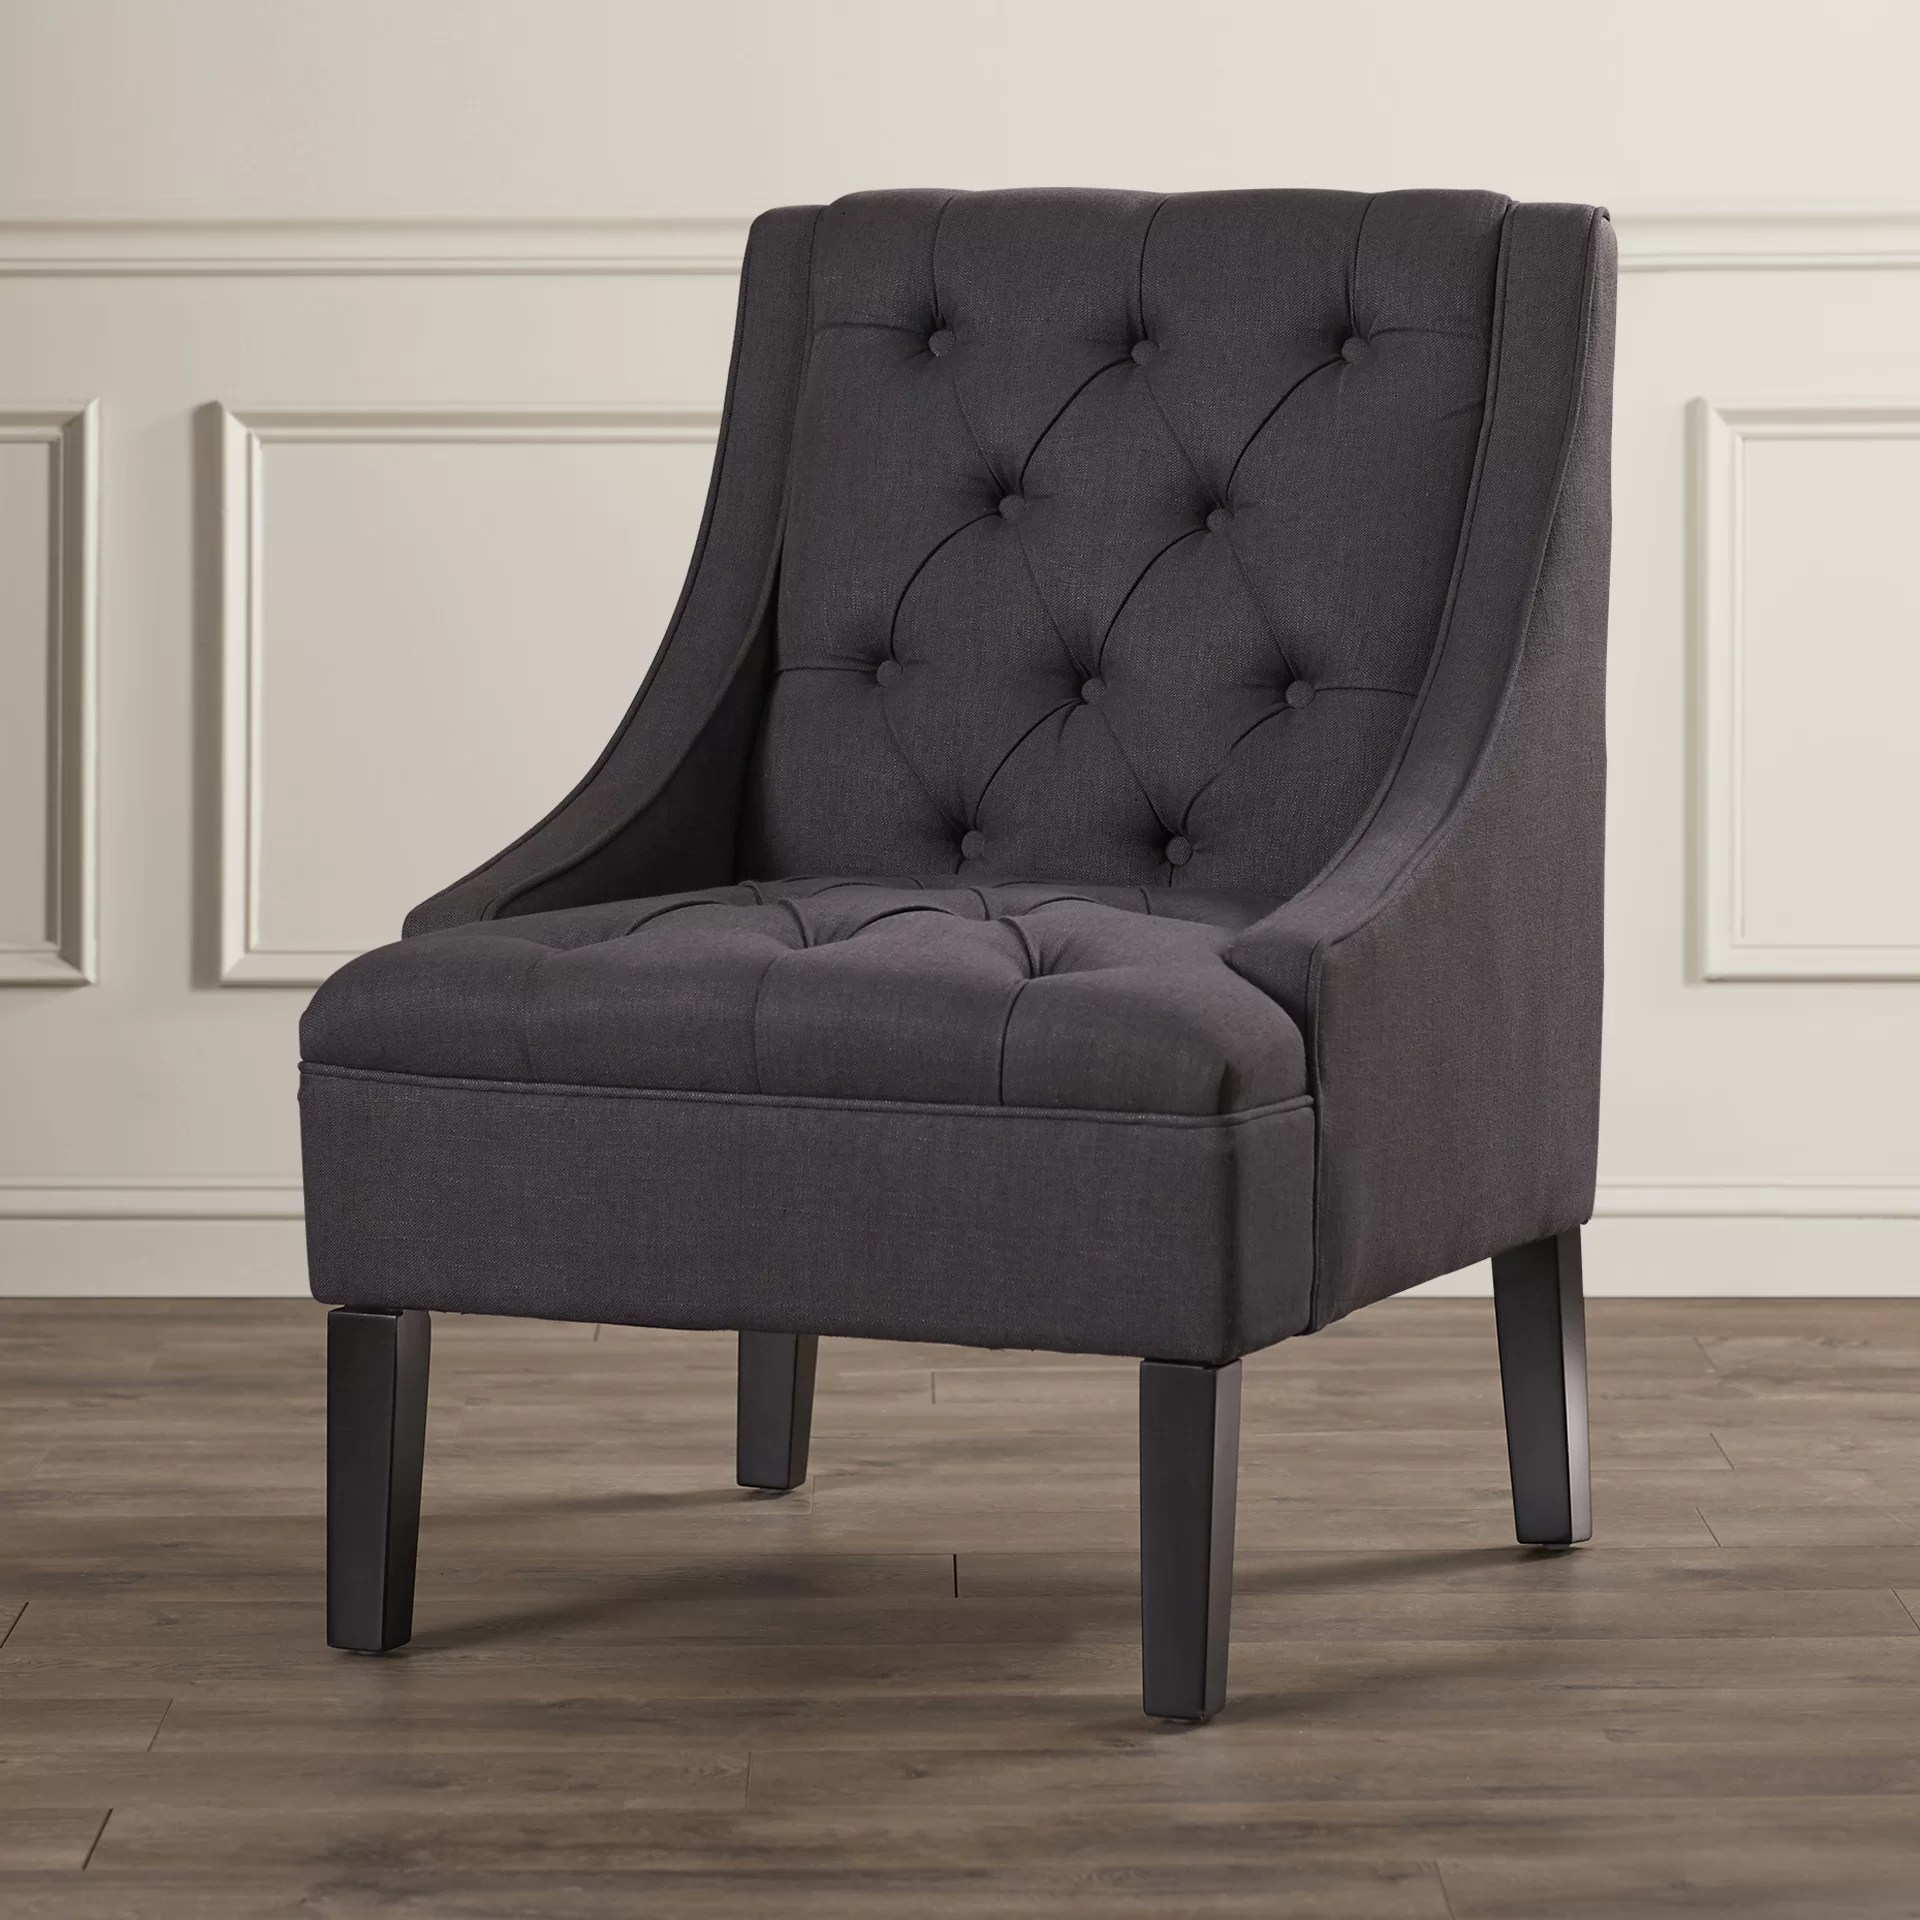 Upholstered Accent Chairs With Arms Three Posts Vienna Twilight Upholstered Arm Chair